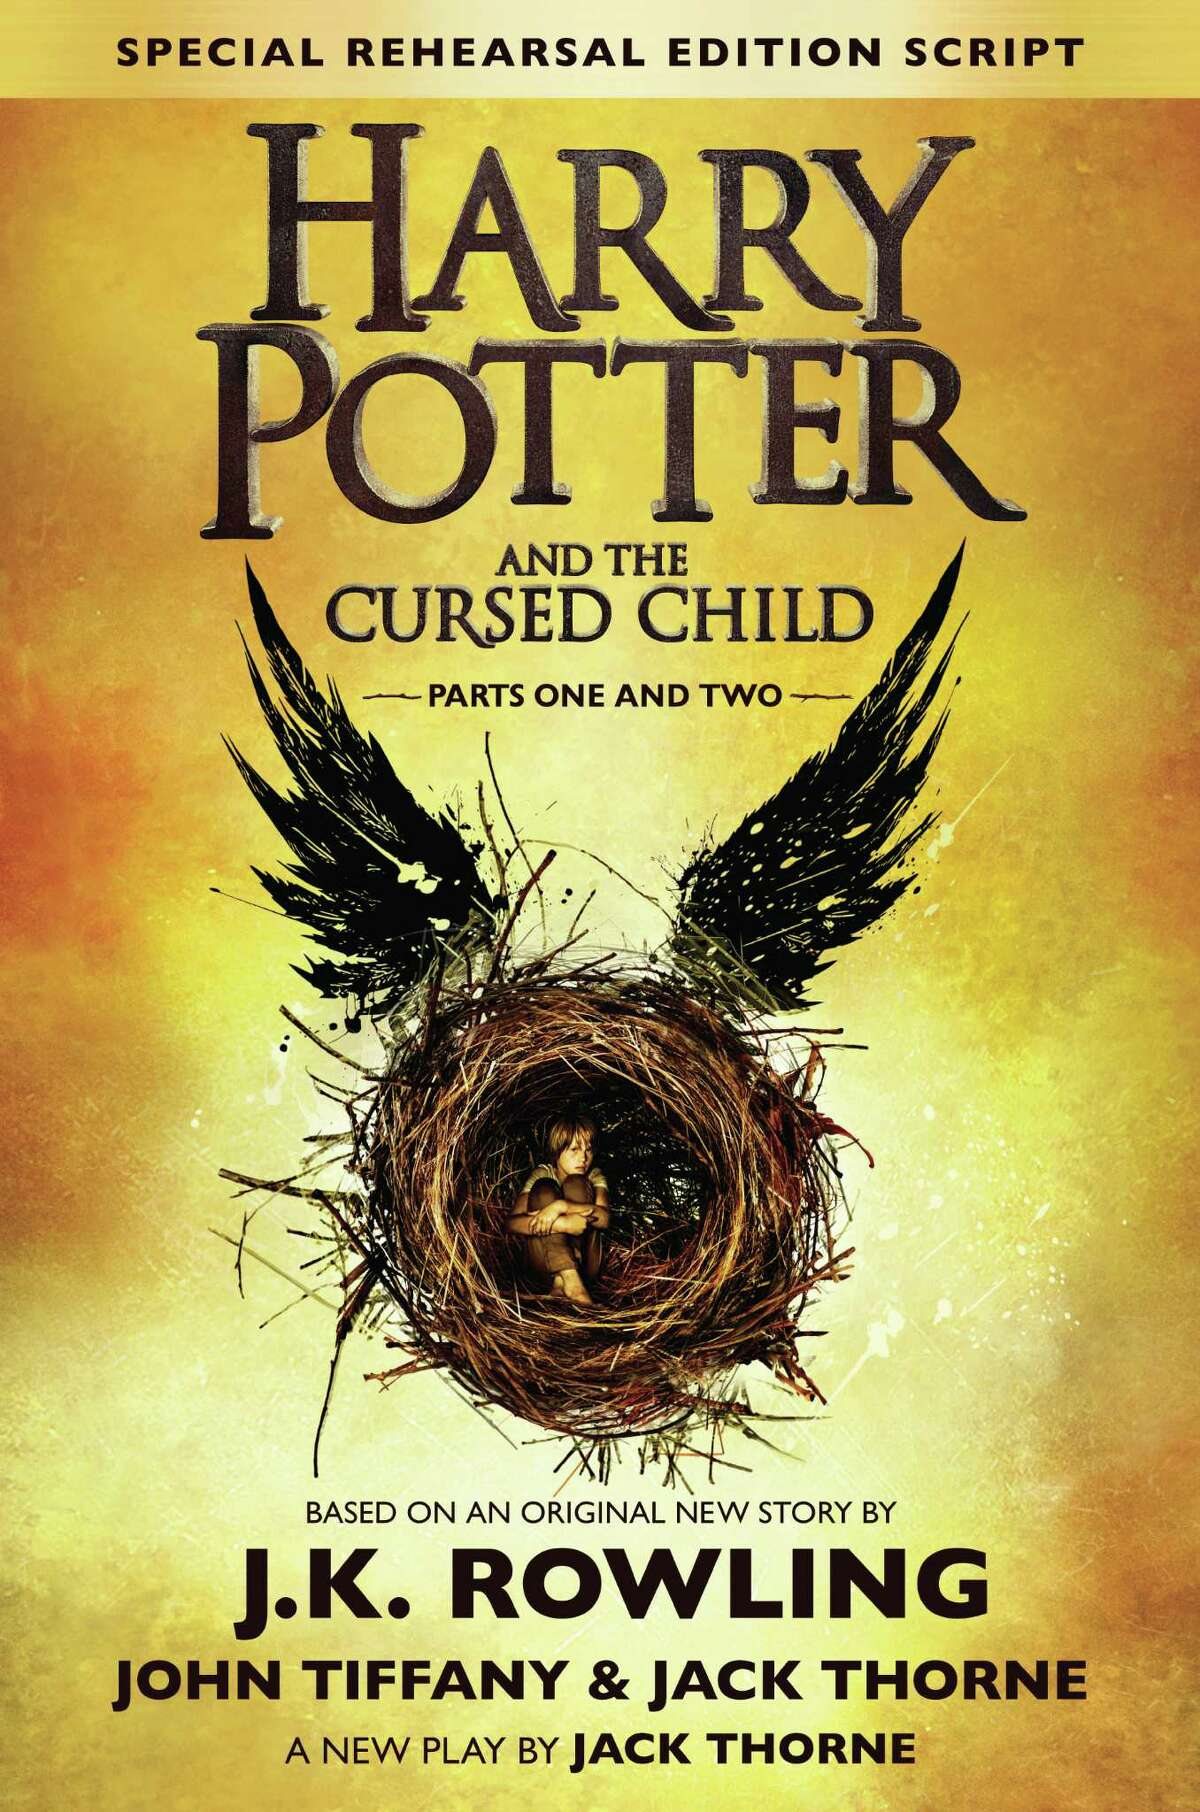 """The publication of """"Harry Potter and the Cursed Child - Parts I & II"""" will be celebrated during special book-release events Saturday, July 30, at the Fairfield Library and the Fairfield University Bookstore."""